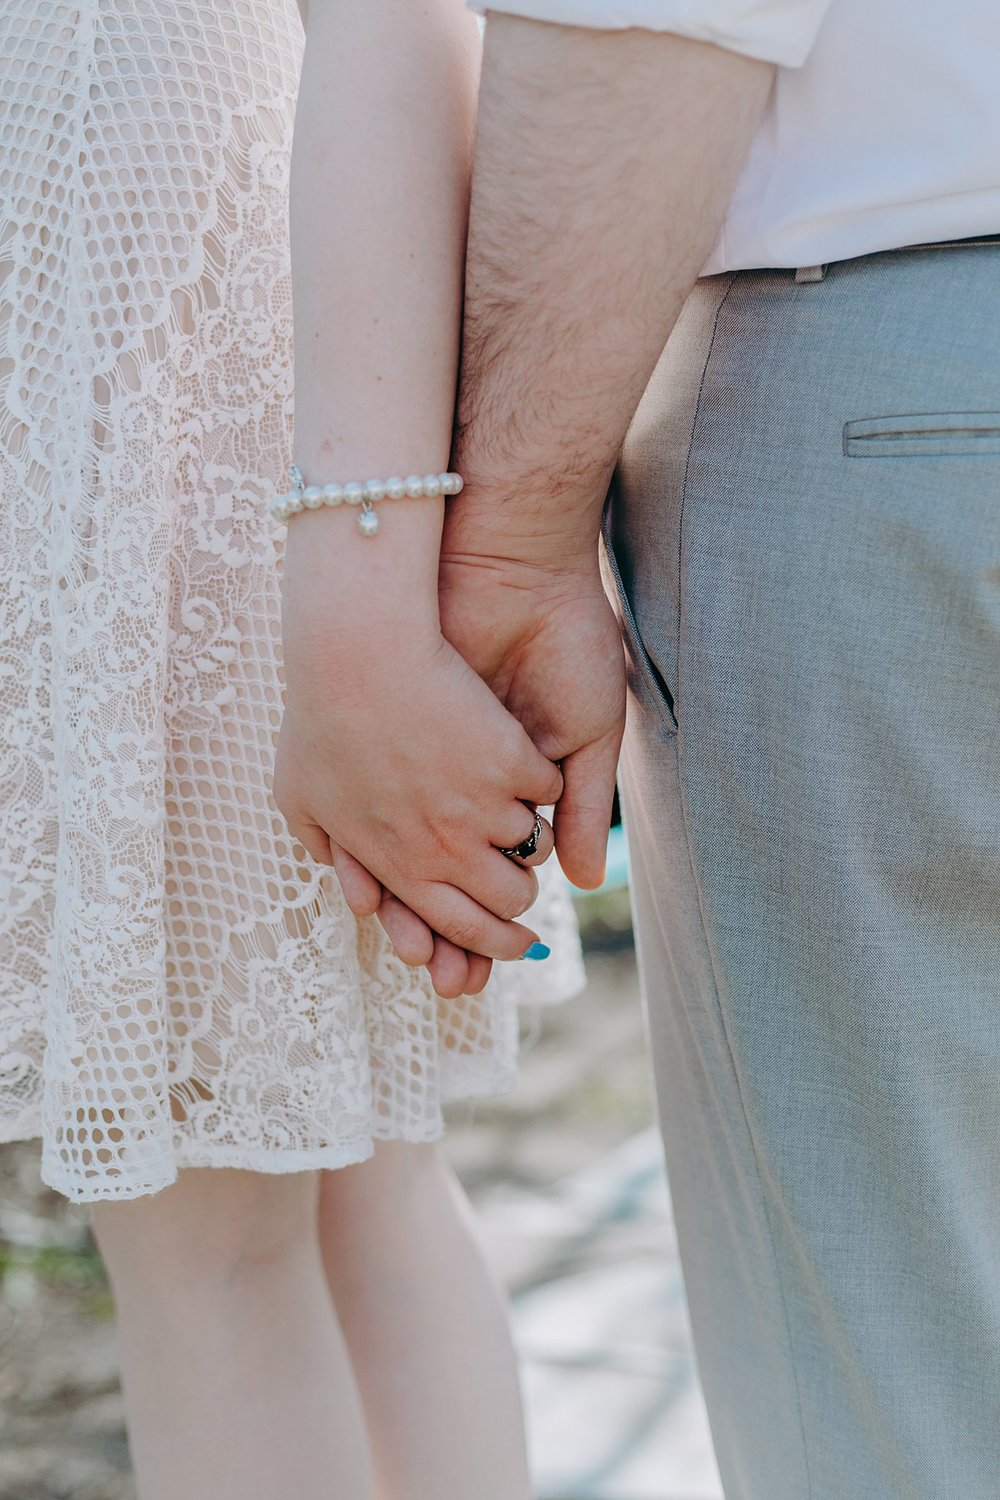 A close-up shot of the bride and groom holding hands.